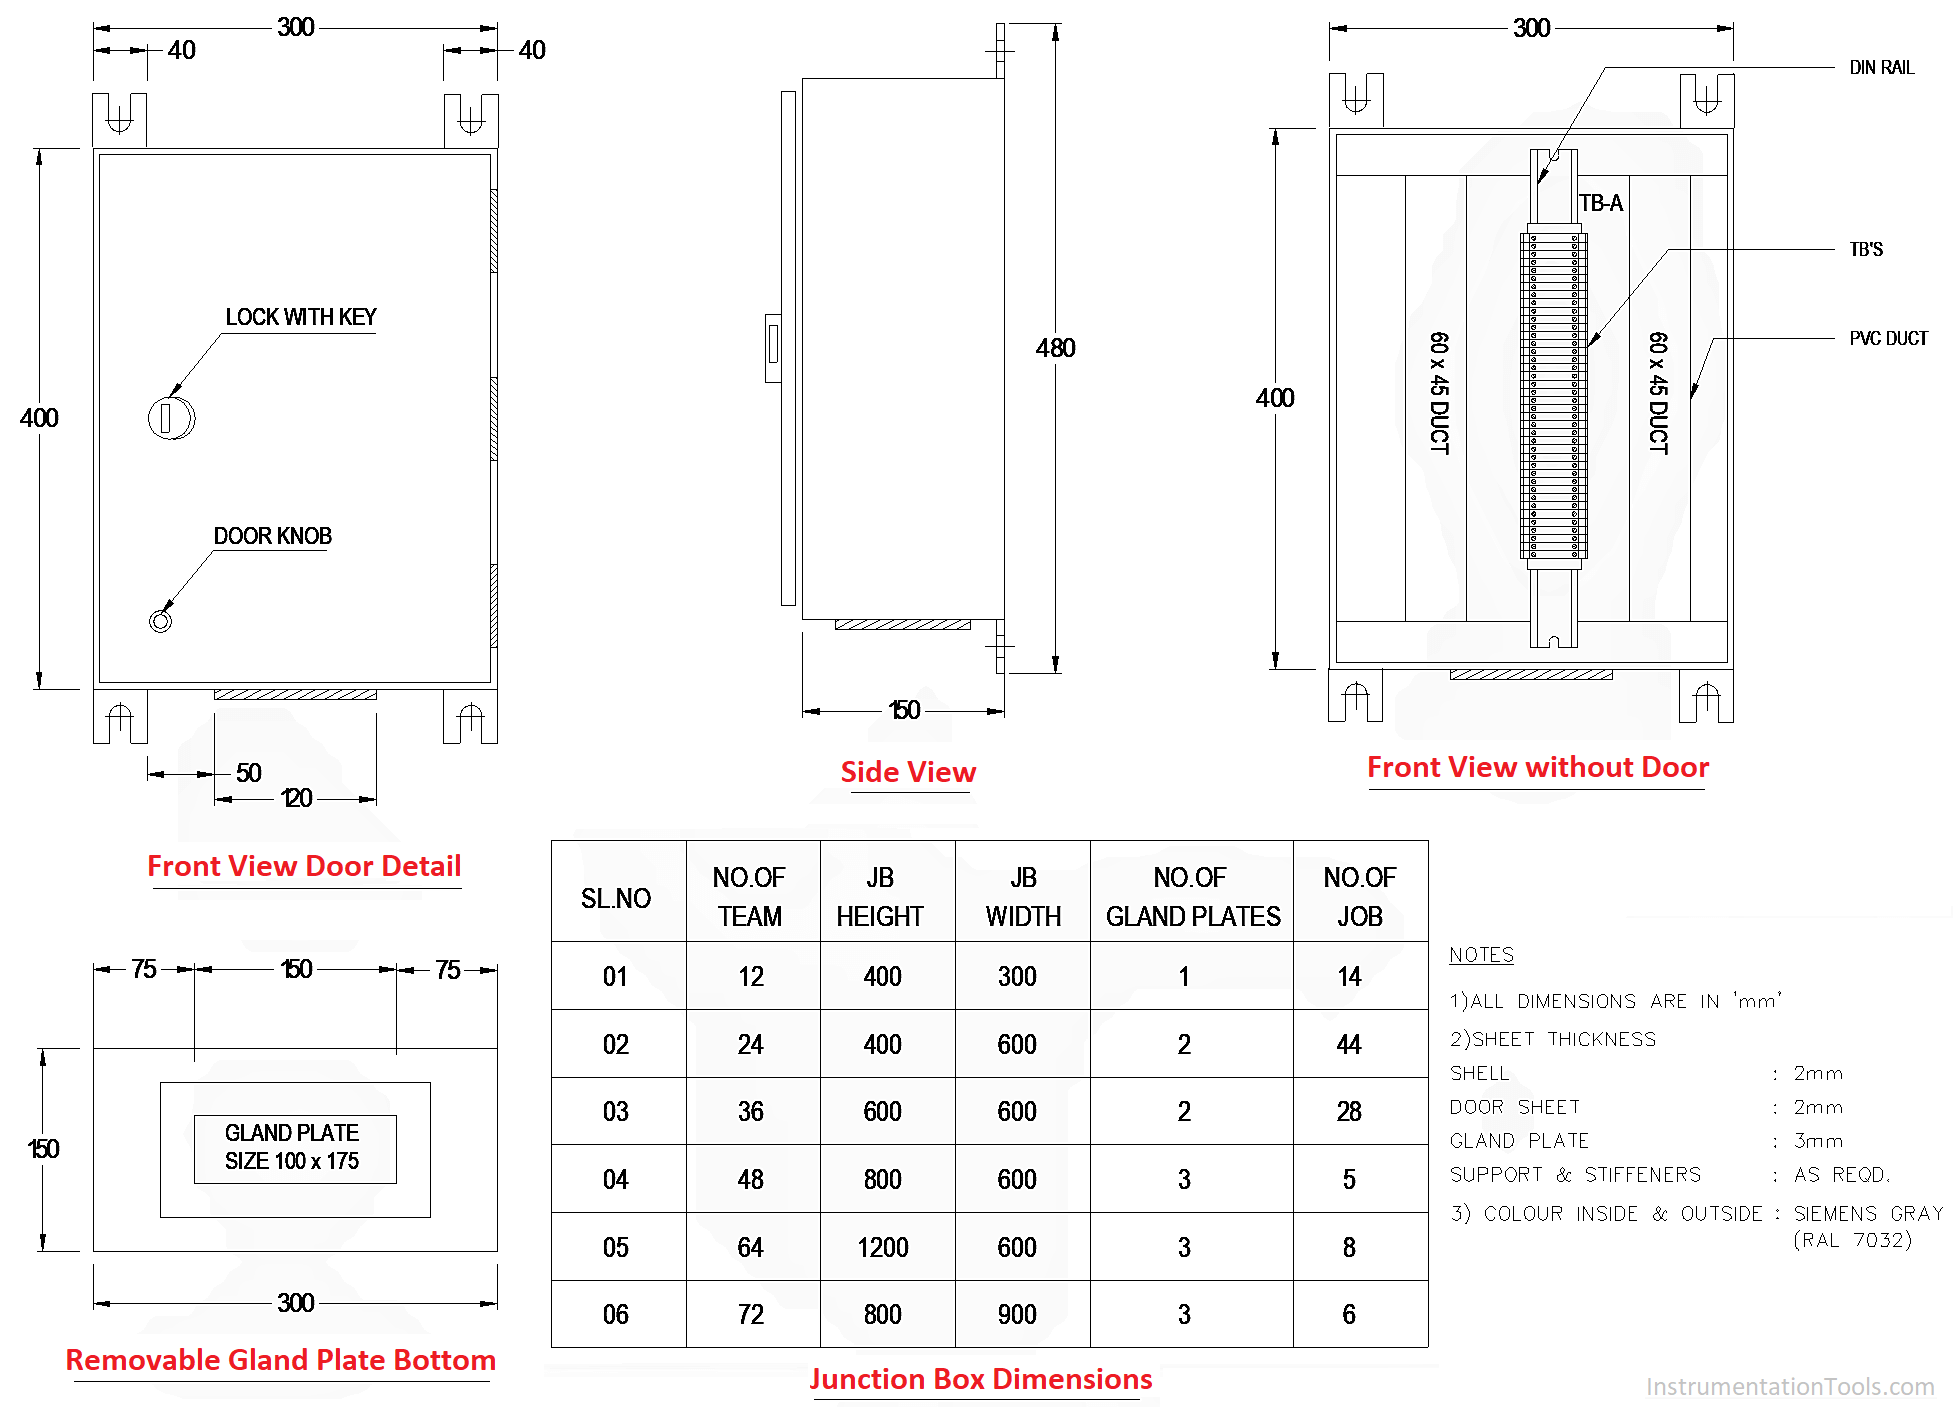 GA Drawing for Junction Box